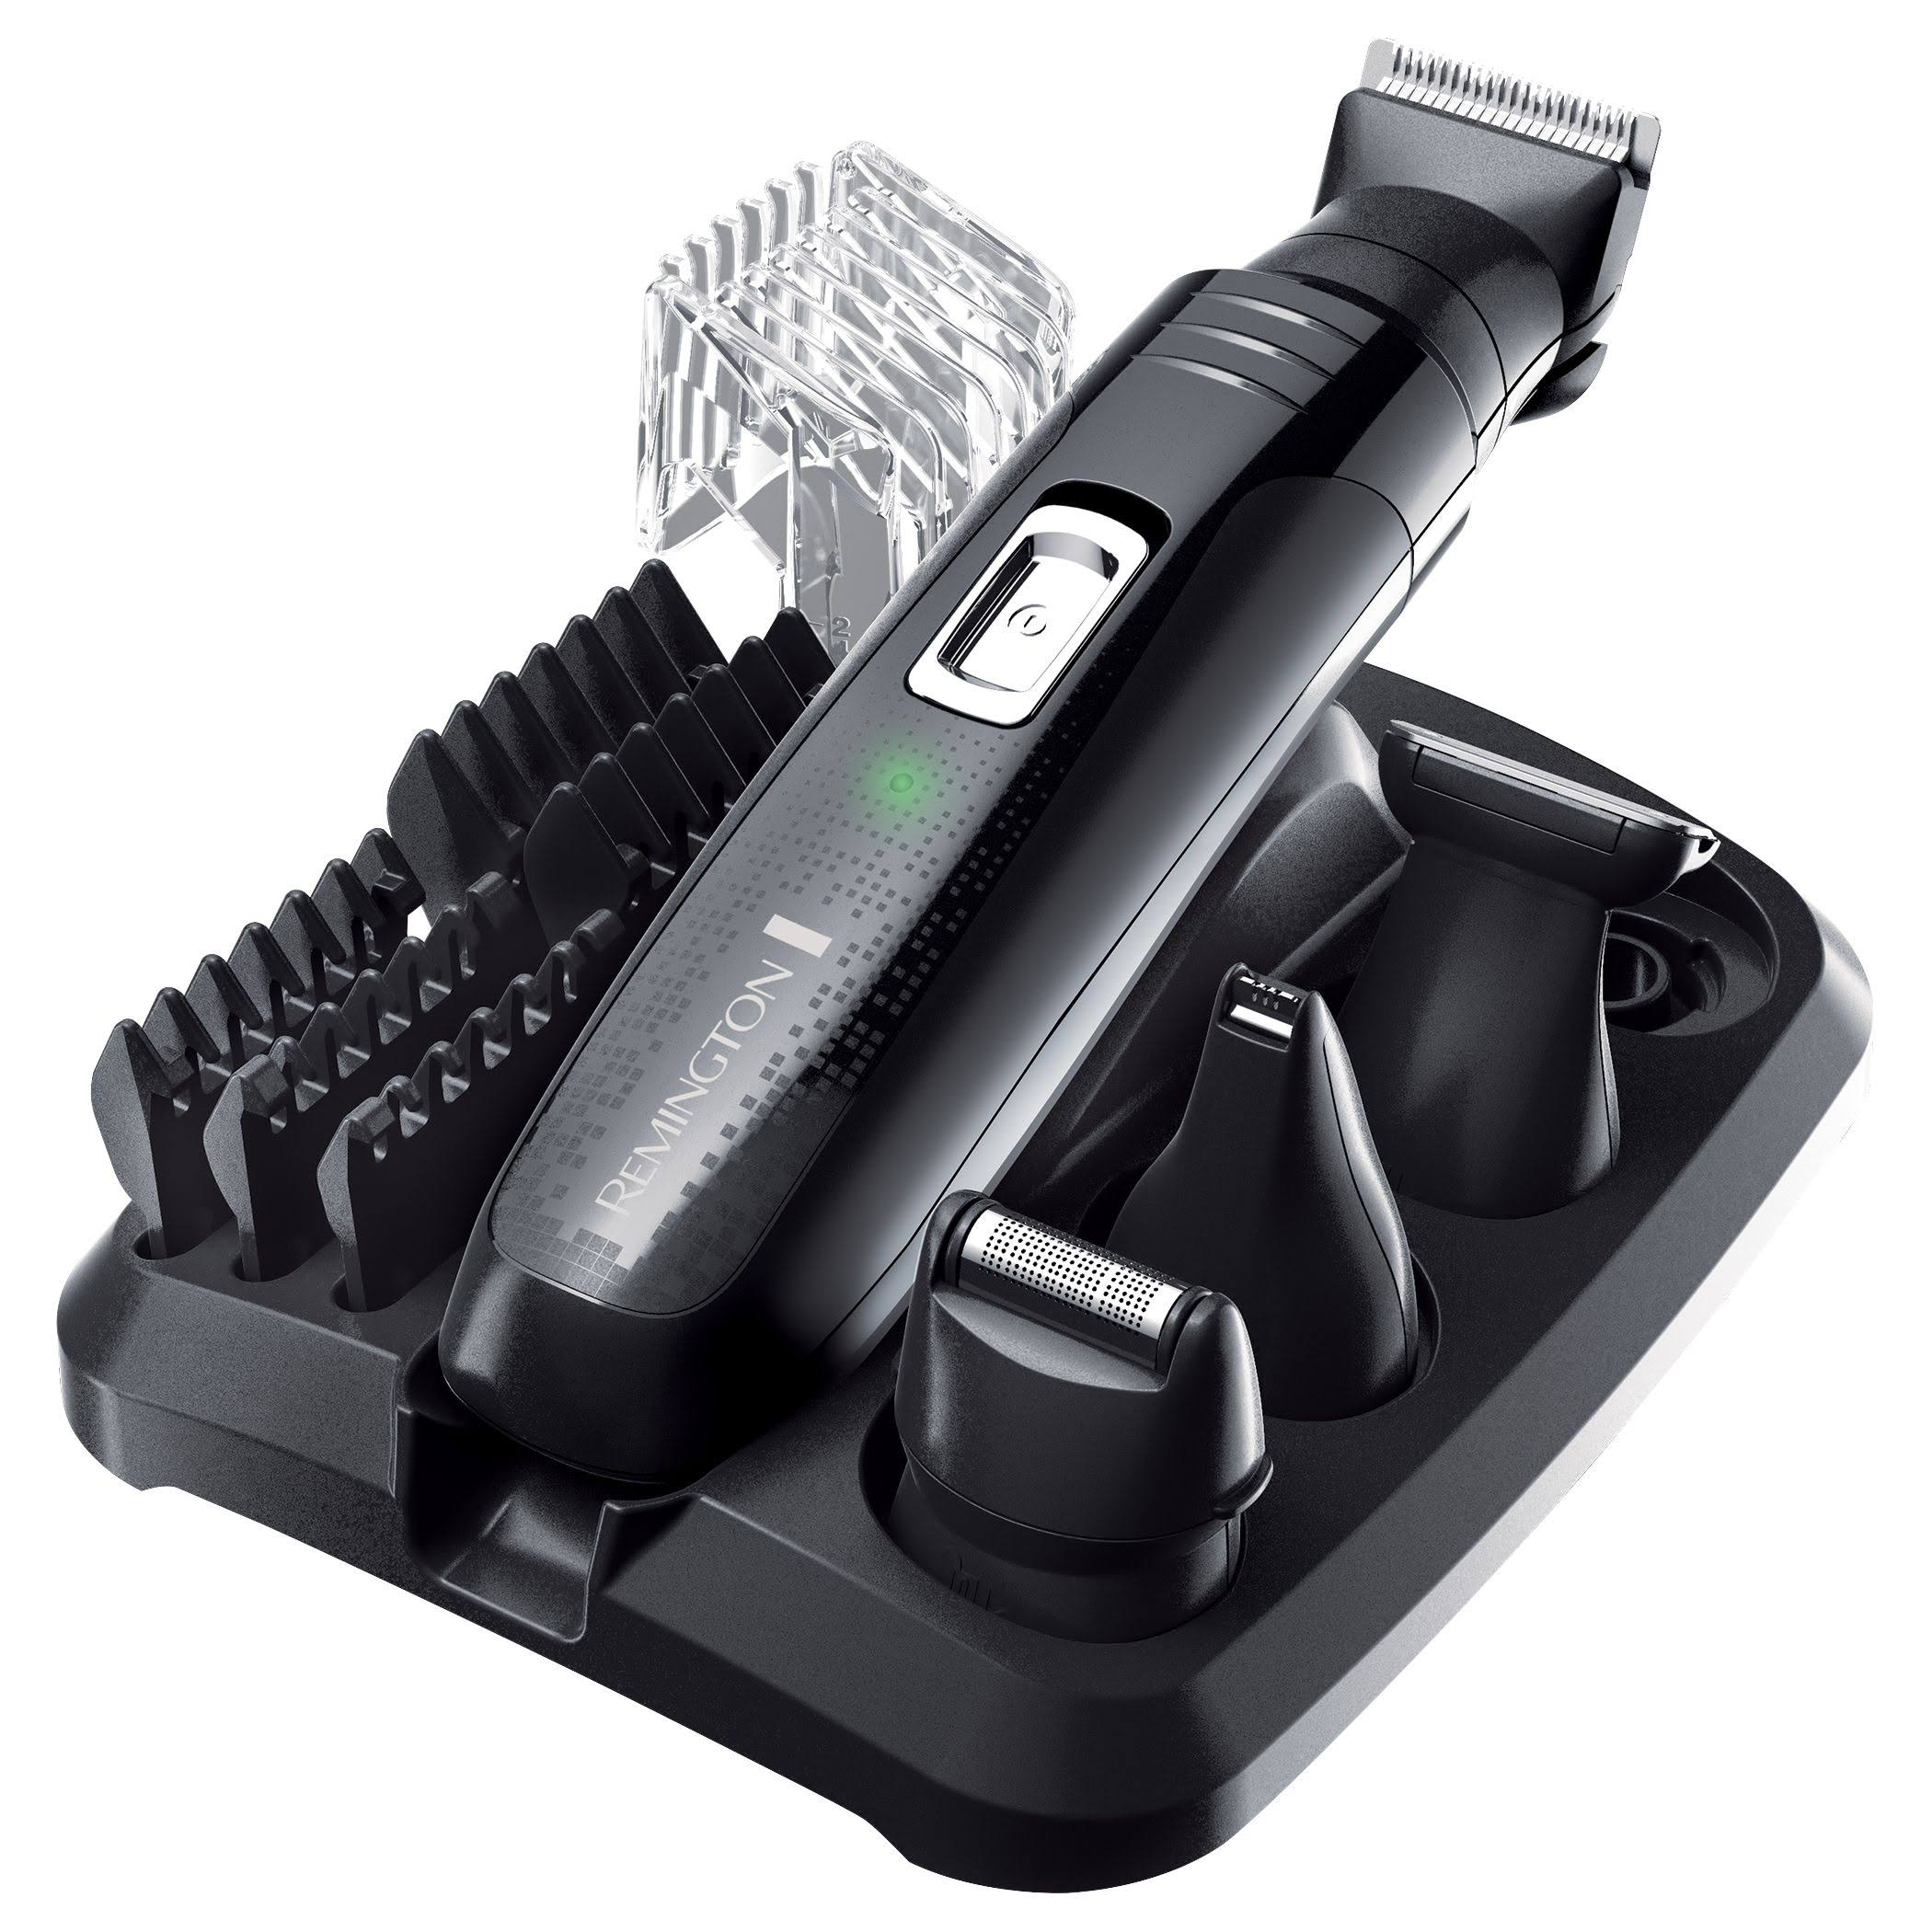 Remington PG6130 All-In-One Grooming Kit